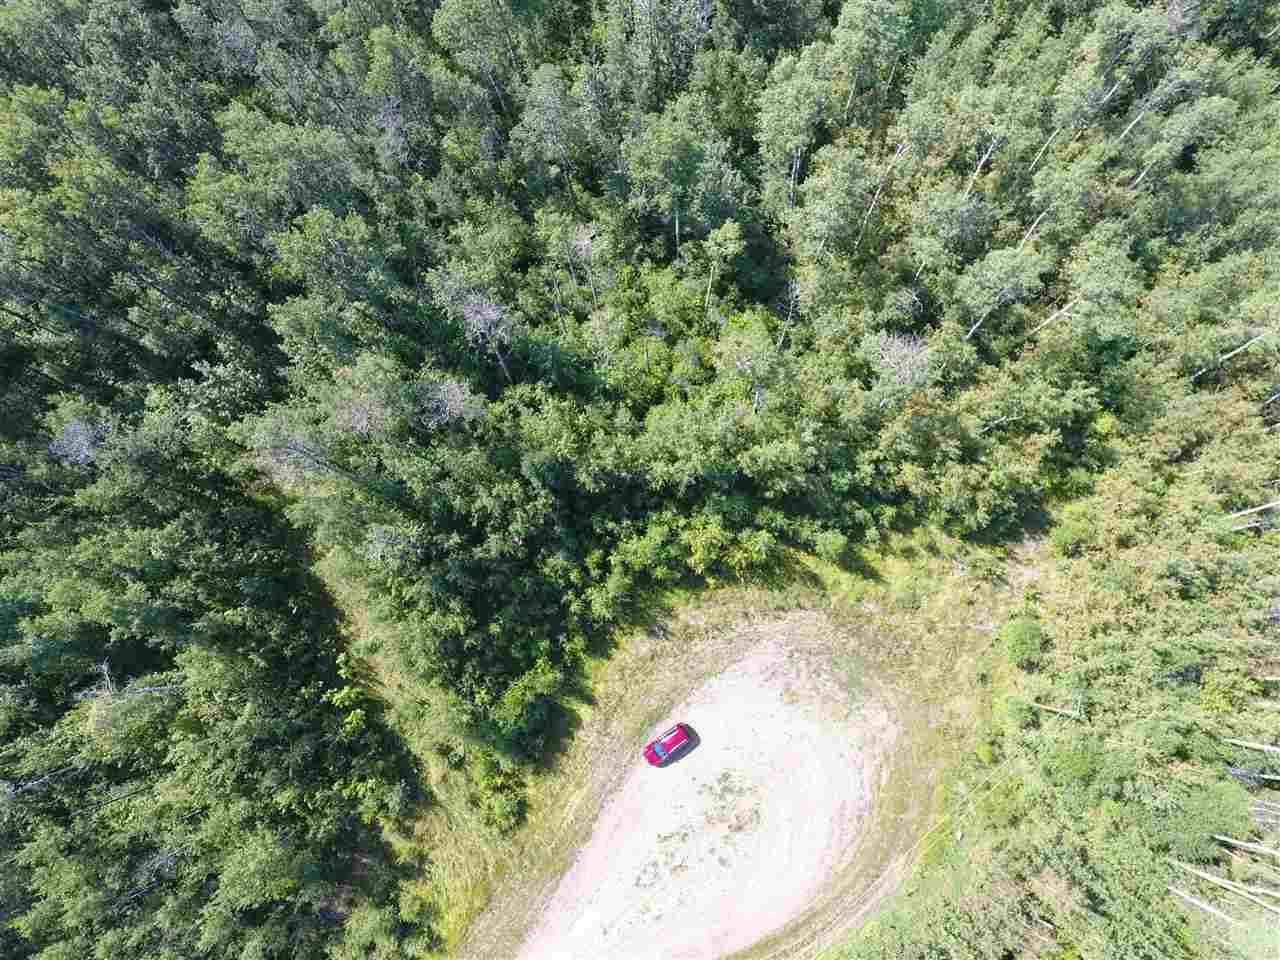 Photo 4: Photos: 22 Morgan Way: Rural Lac Ste. Anne County Rural Land/Vacant Lot for sale : MLS®# E4209833